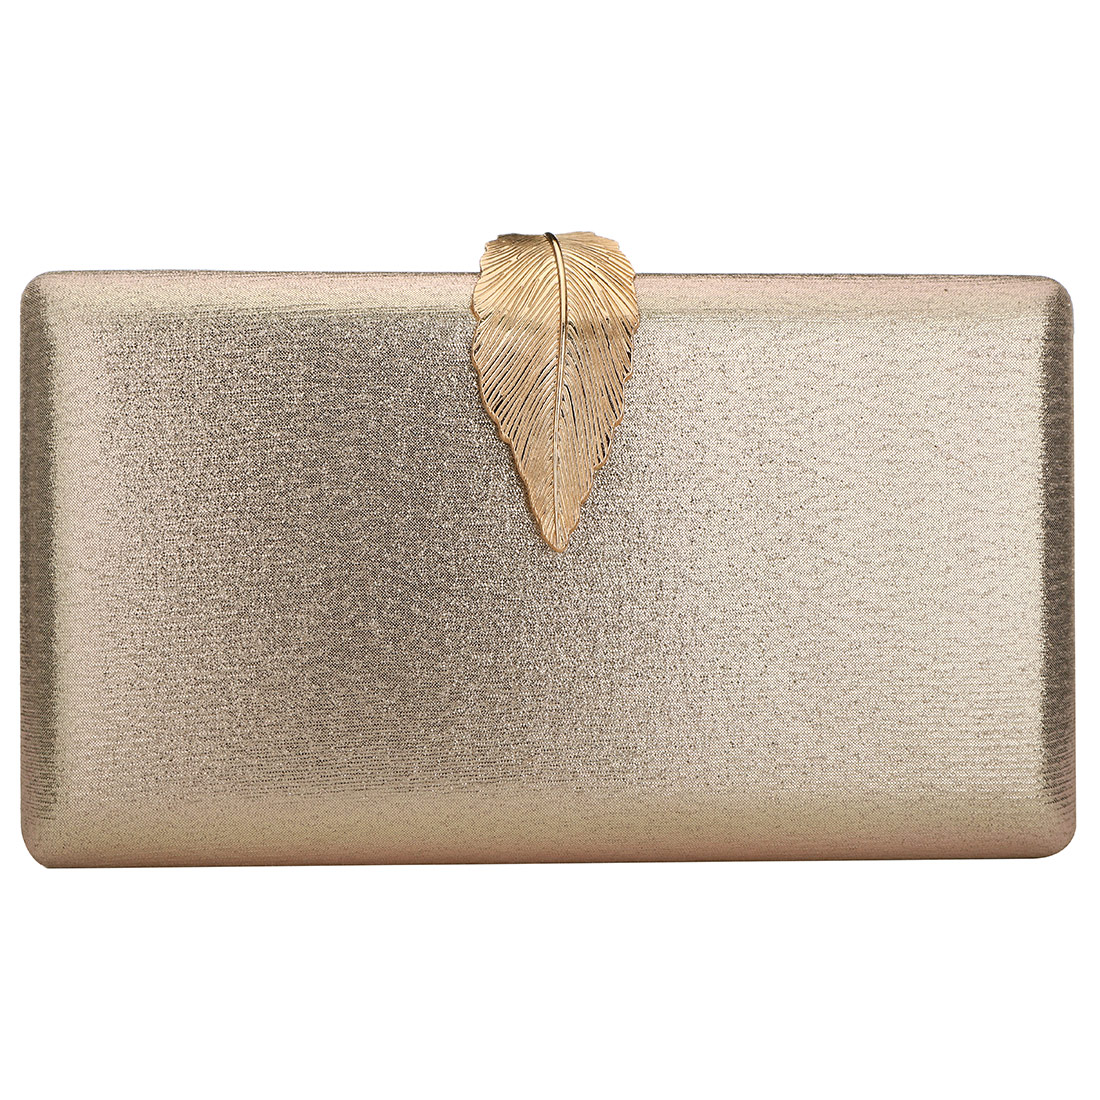 2019 Elegant Evening Clutch Purse Famous Box Bag With Chain Solid Color Shoulder Crossbody Bags For Women Gold Sliver Clutches(China)